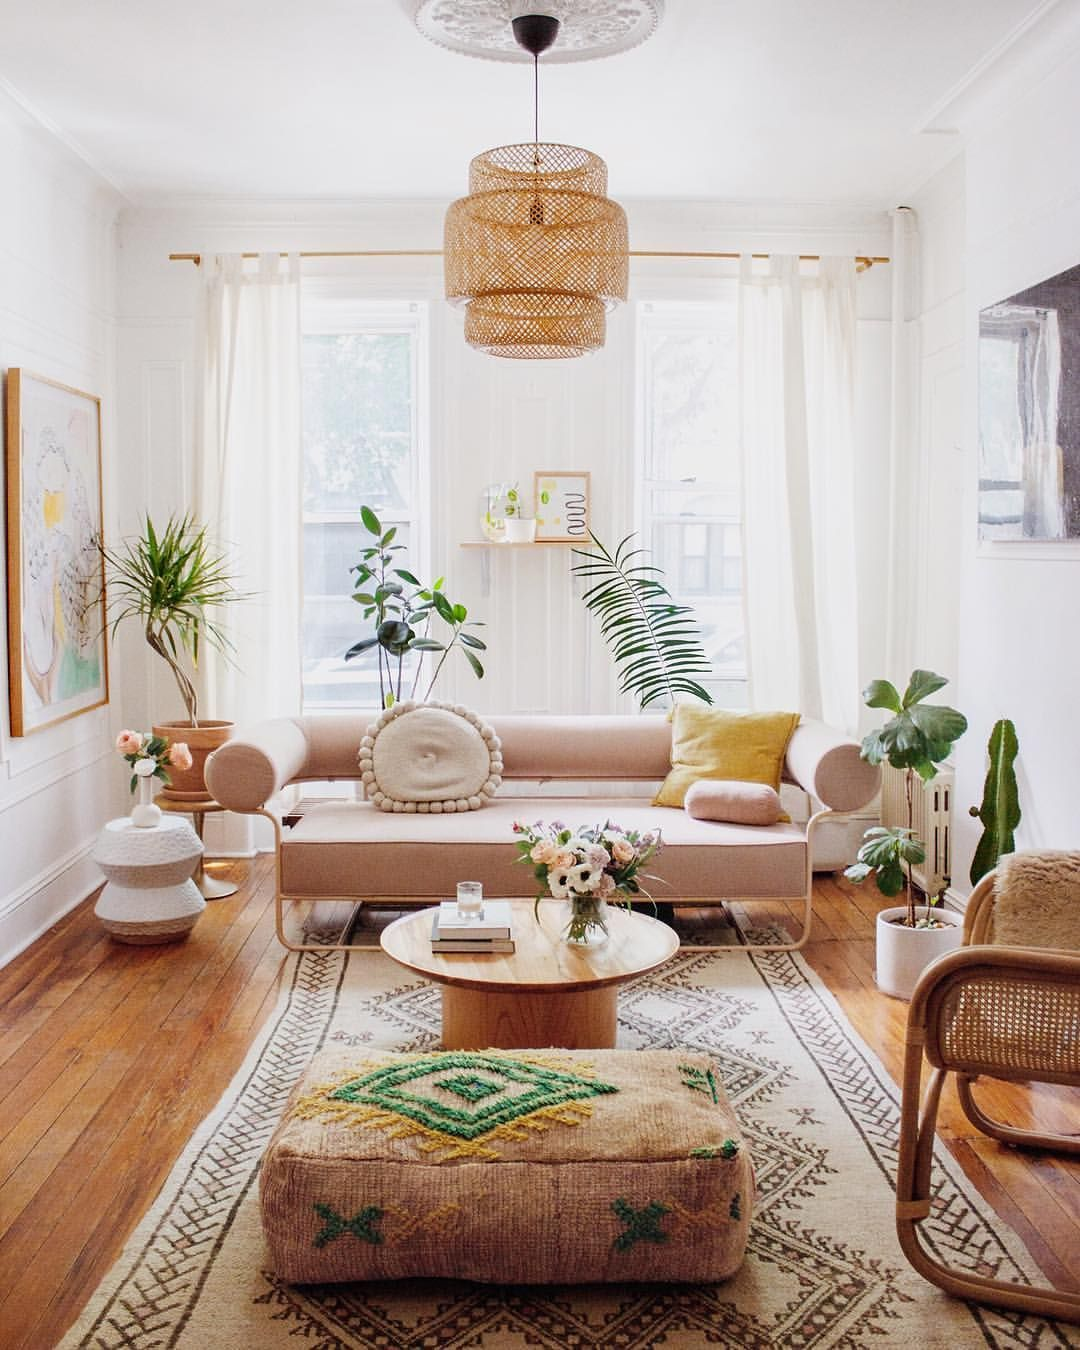 Design Your Own Living Room Free: We're In Love With This Simple And Clean Boho-inspired